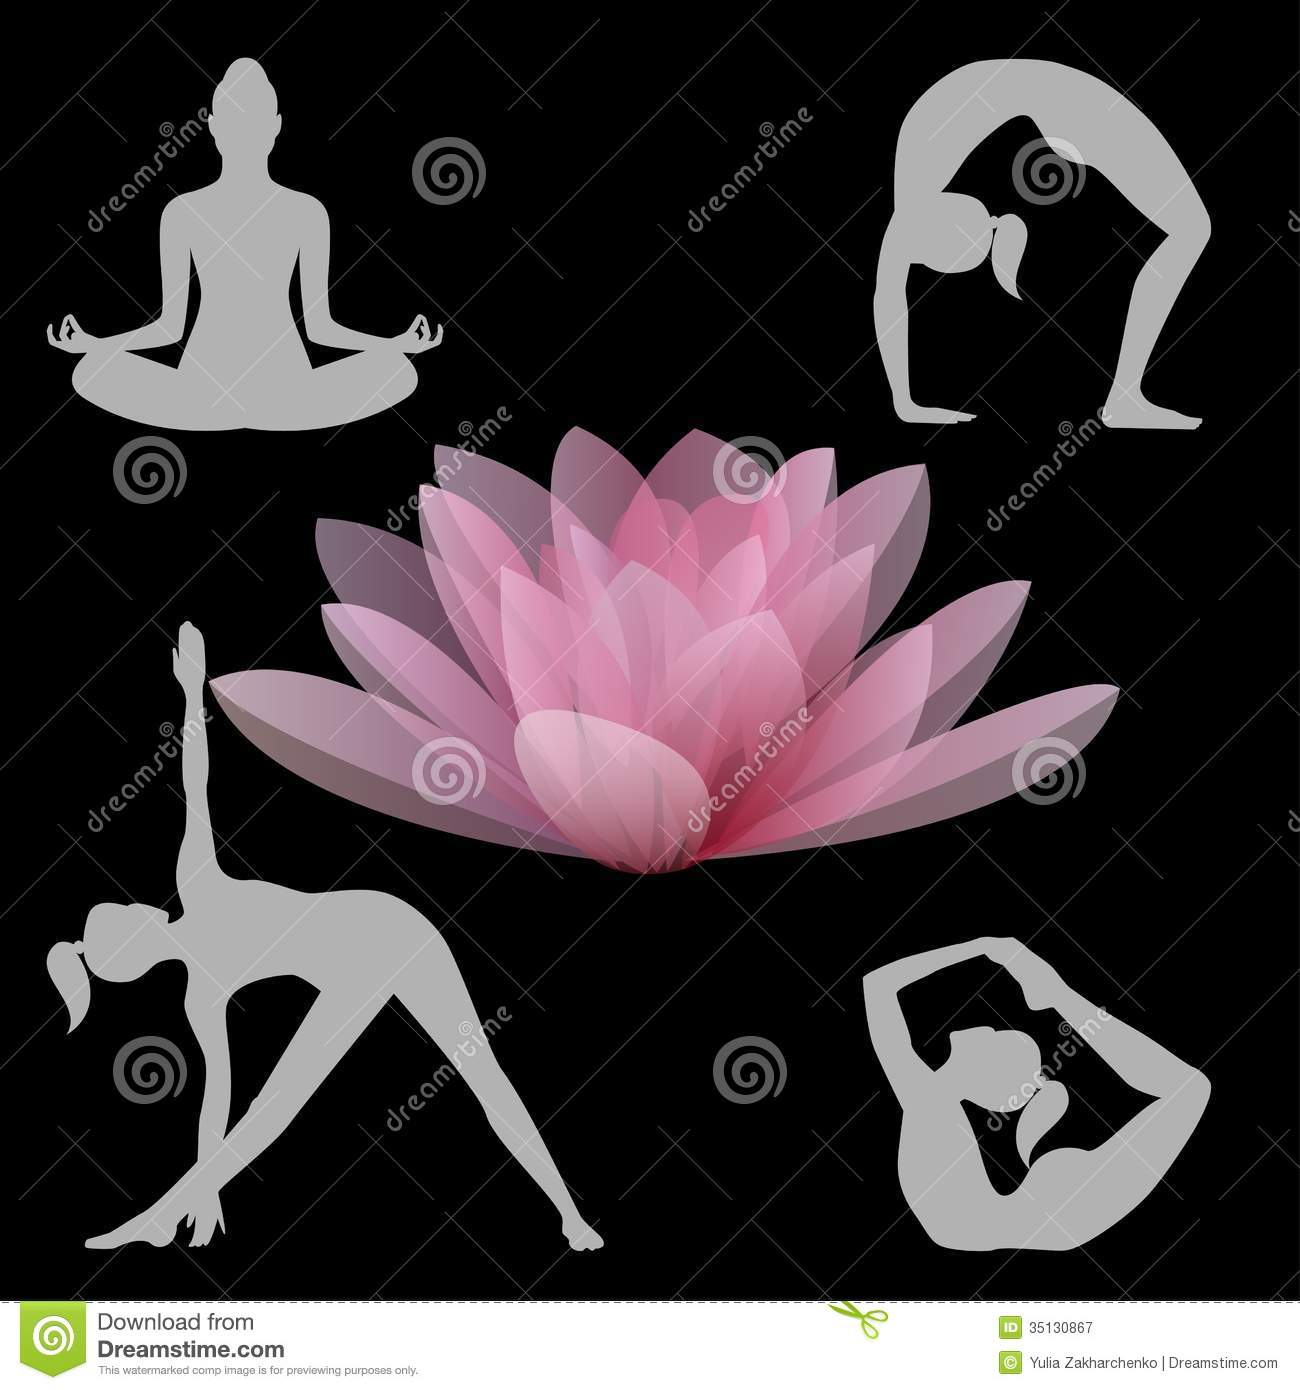 Lotus flower and yoga